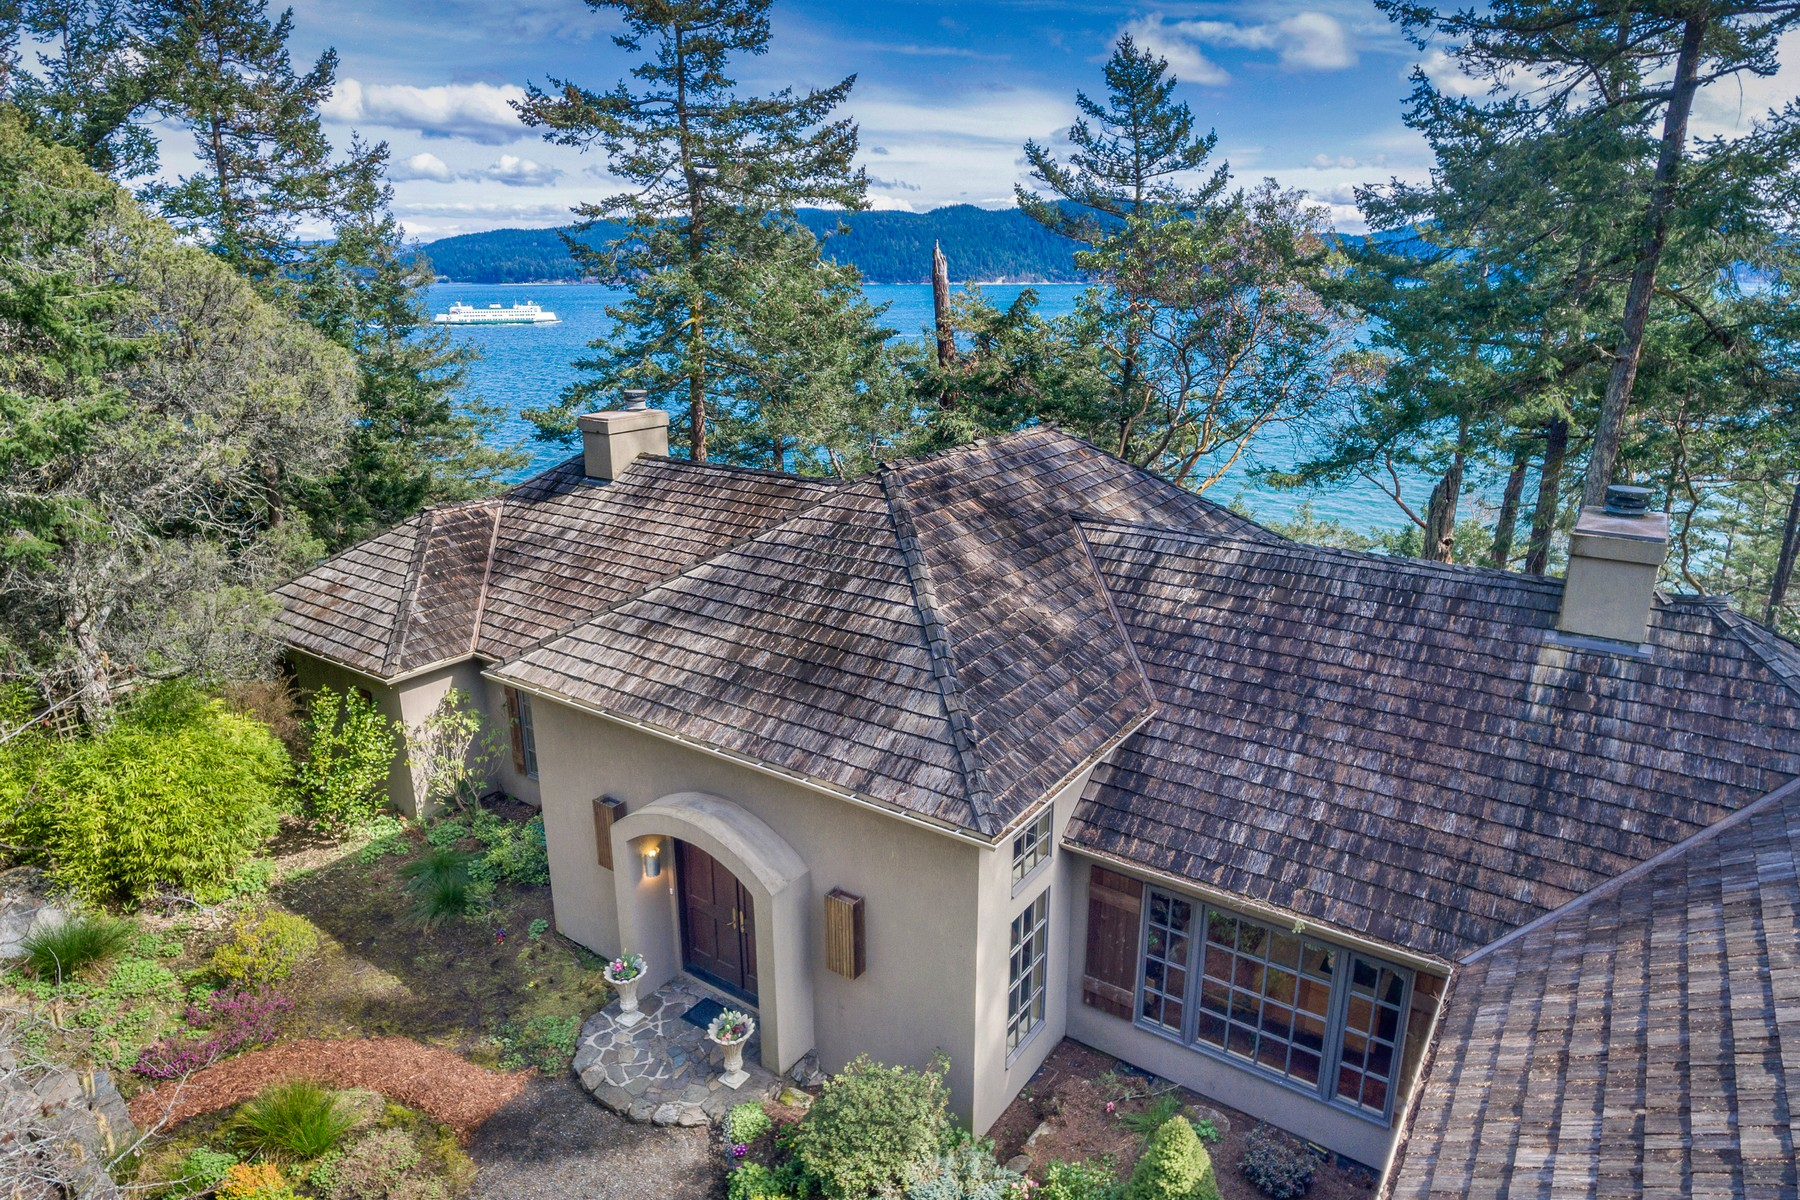 Casa Unifamiliar por un Venta en Beautiful Waterfront Home on Lopez Island 688 Shoreland Drive Lopez Island, Washington 98261 Estados Unidos